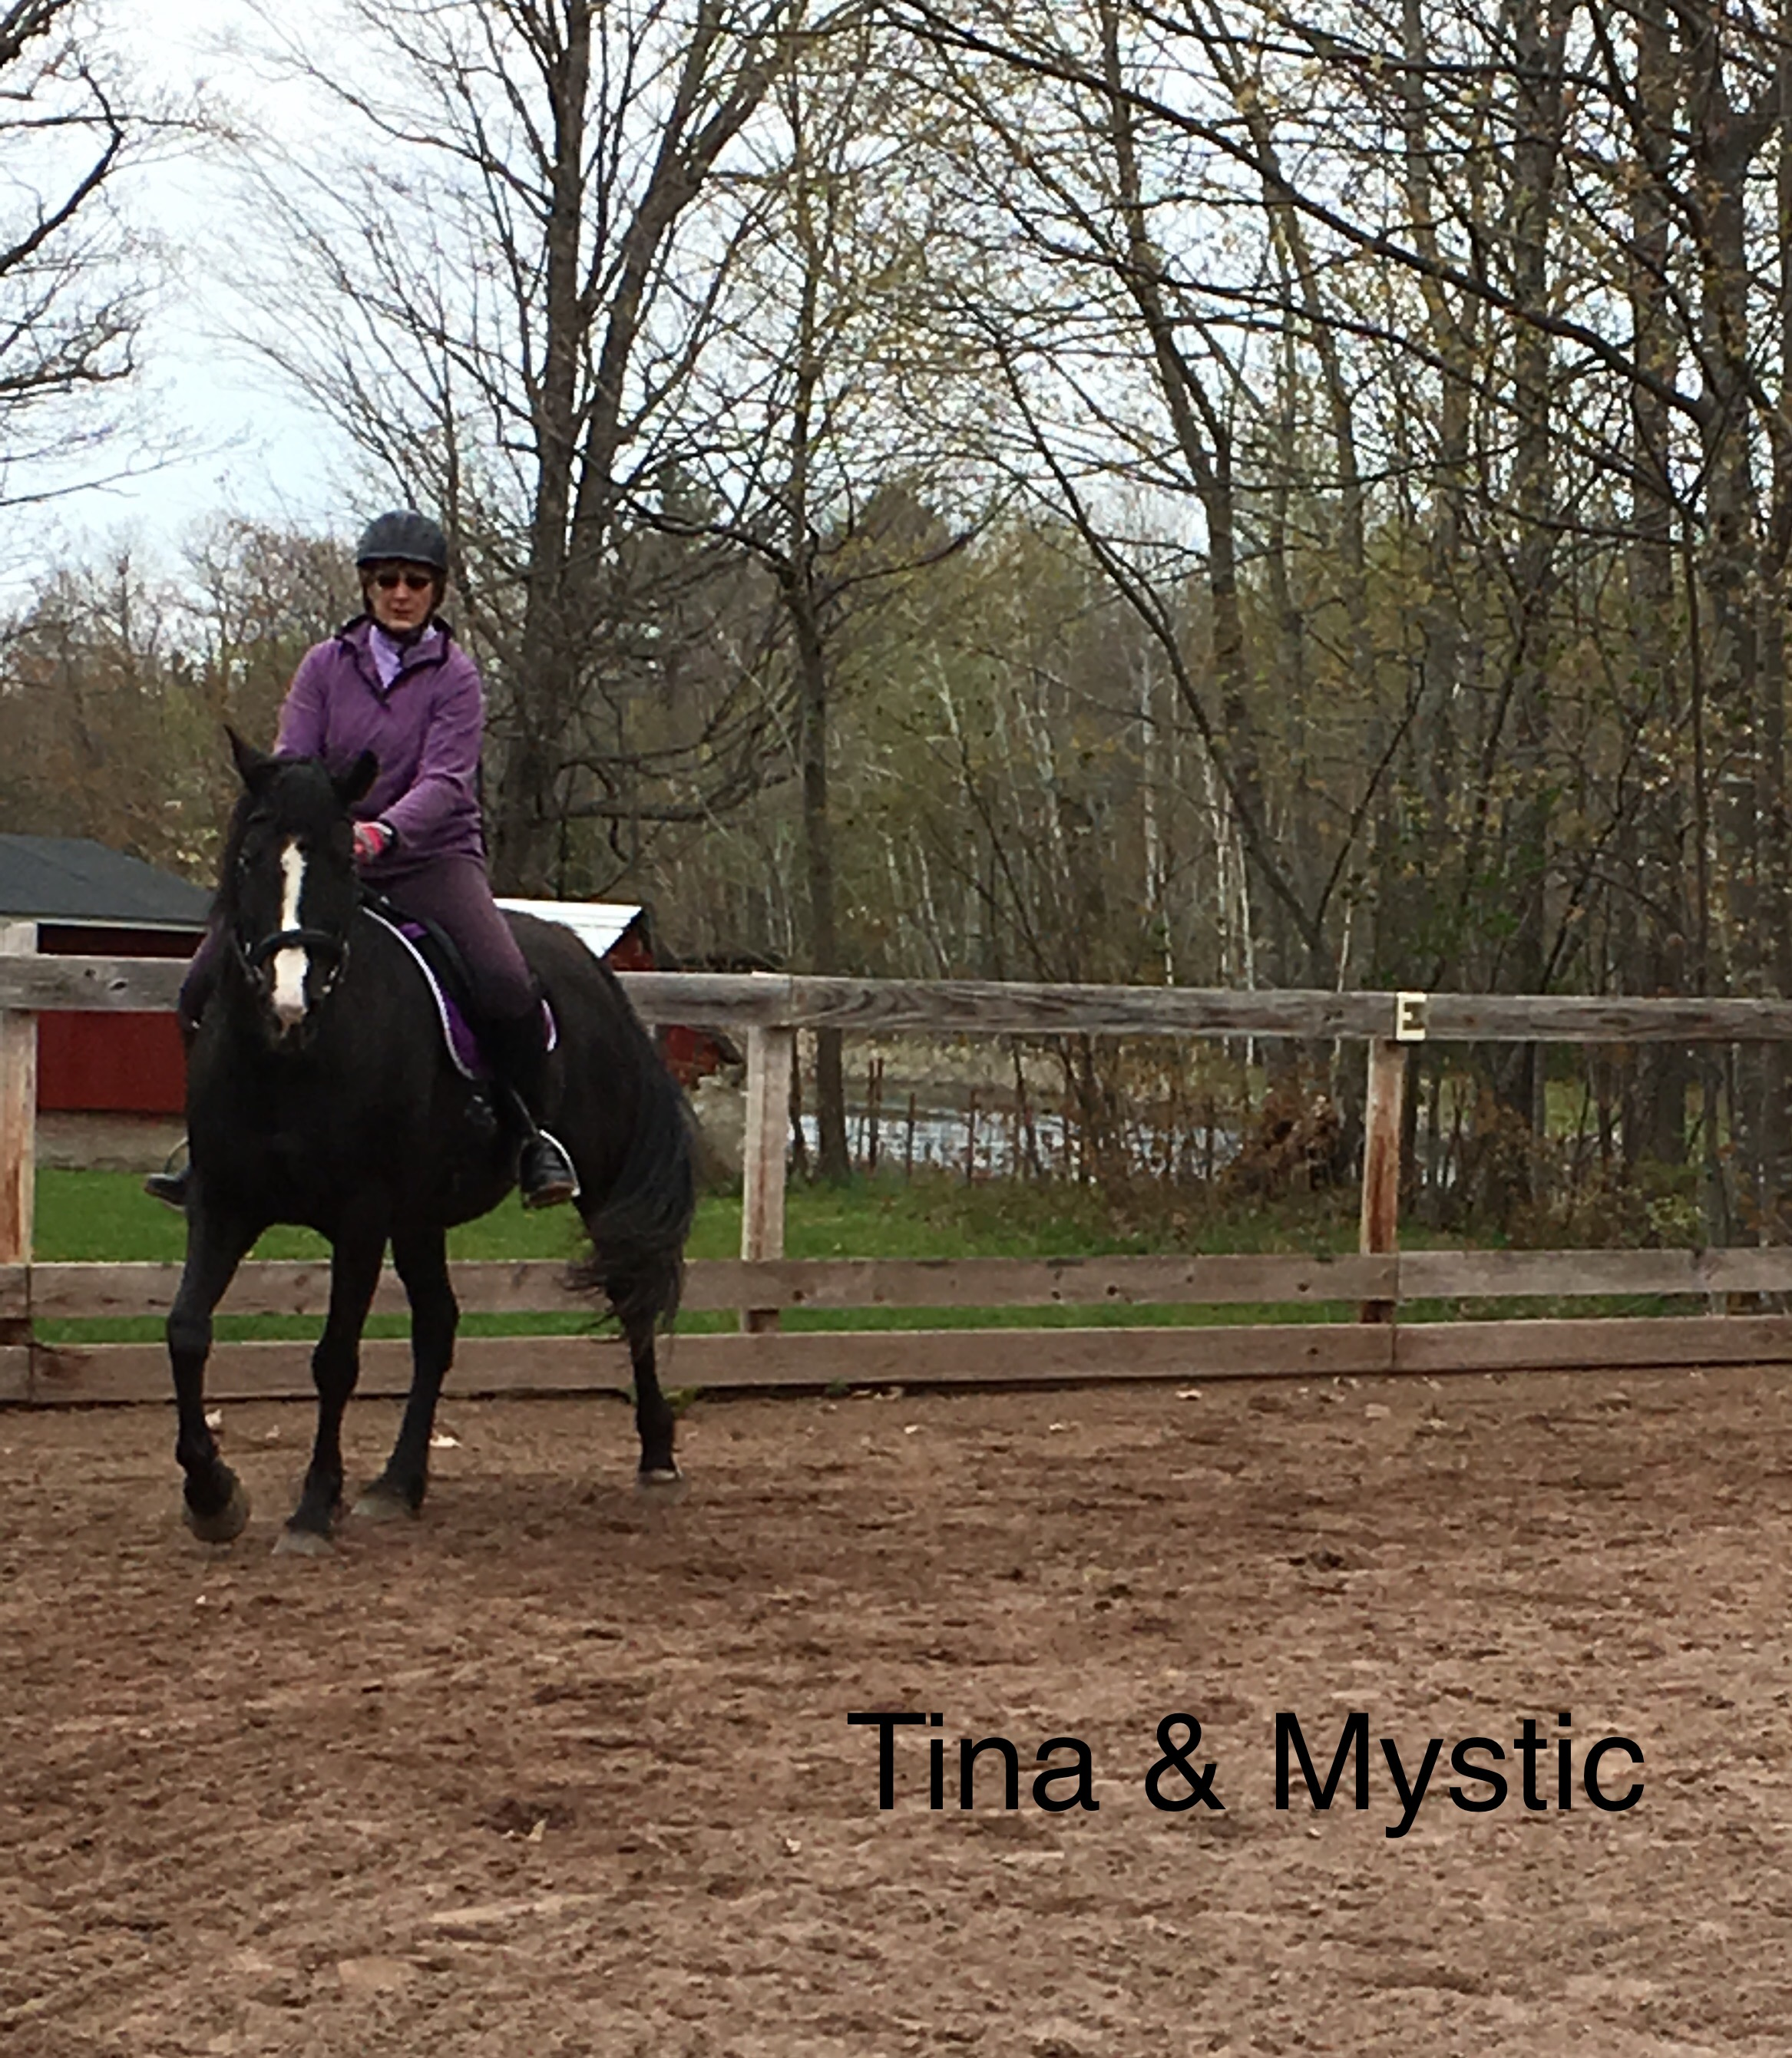 tina and mystic